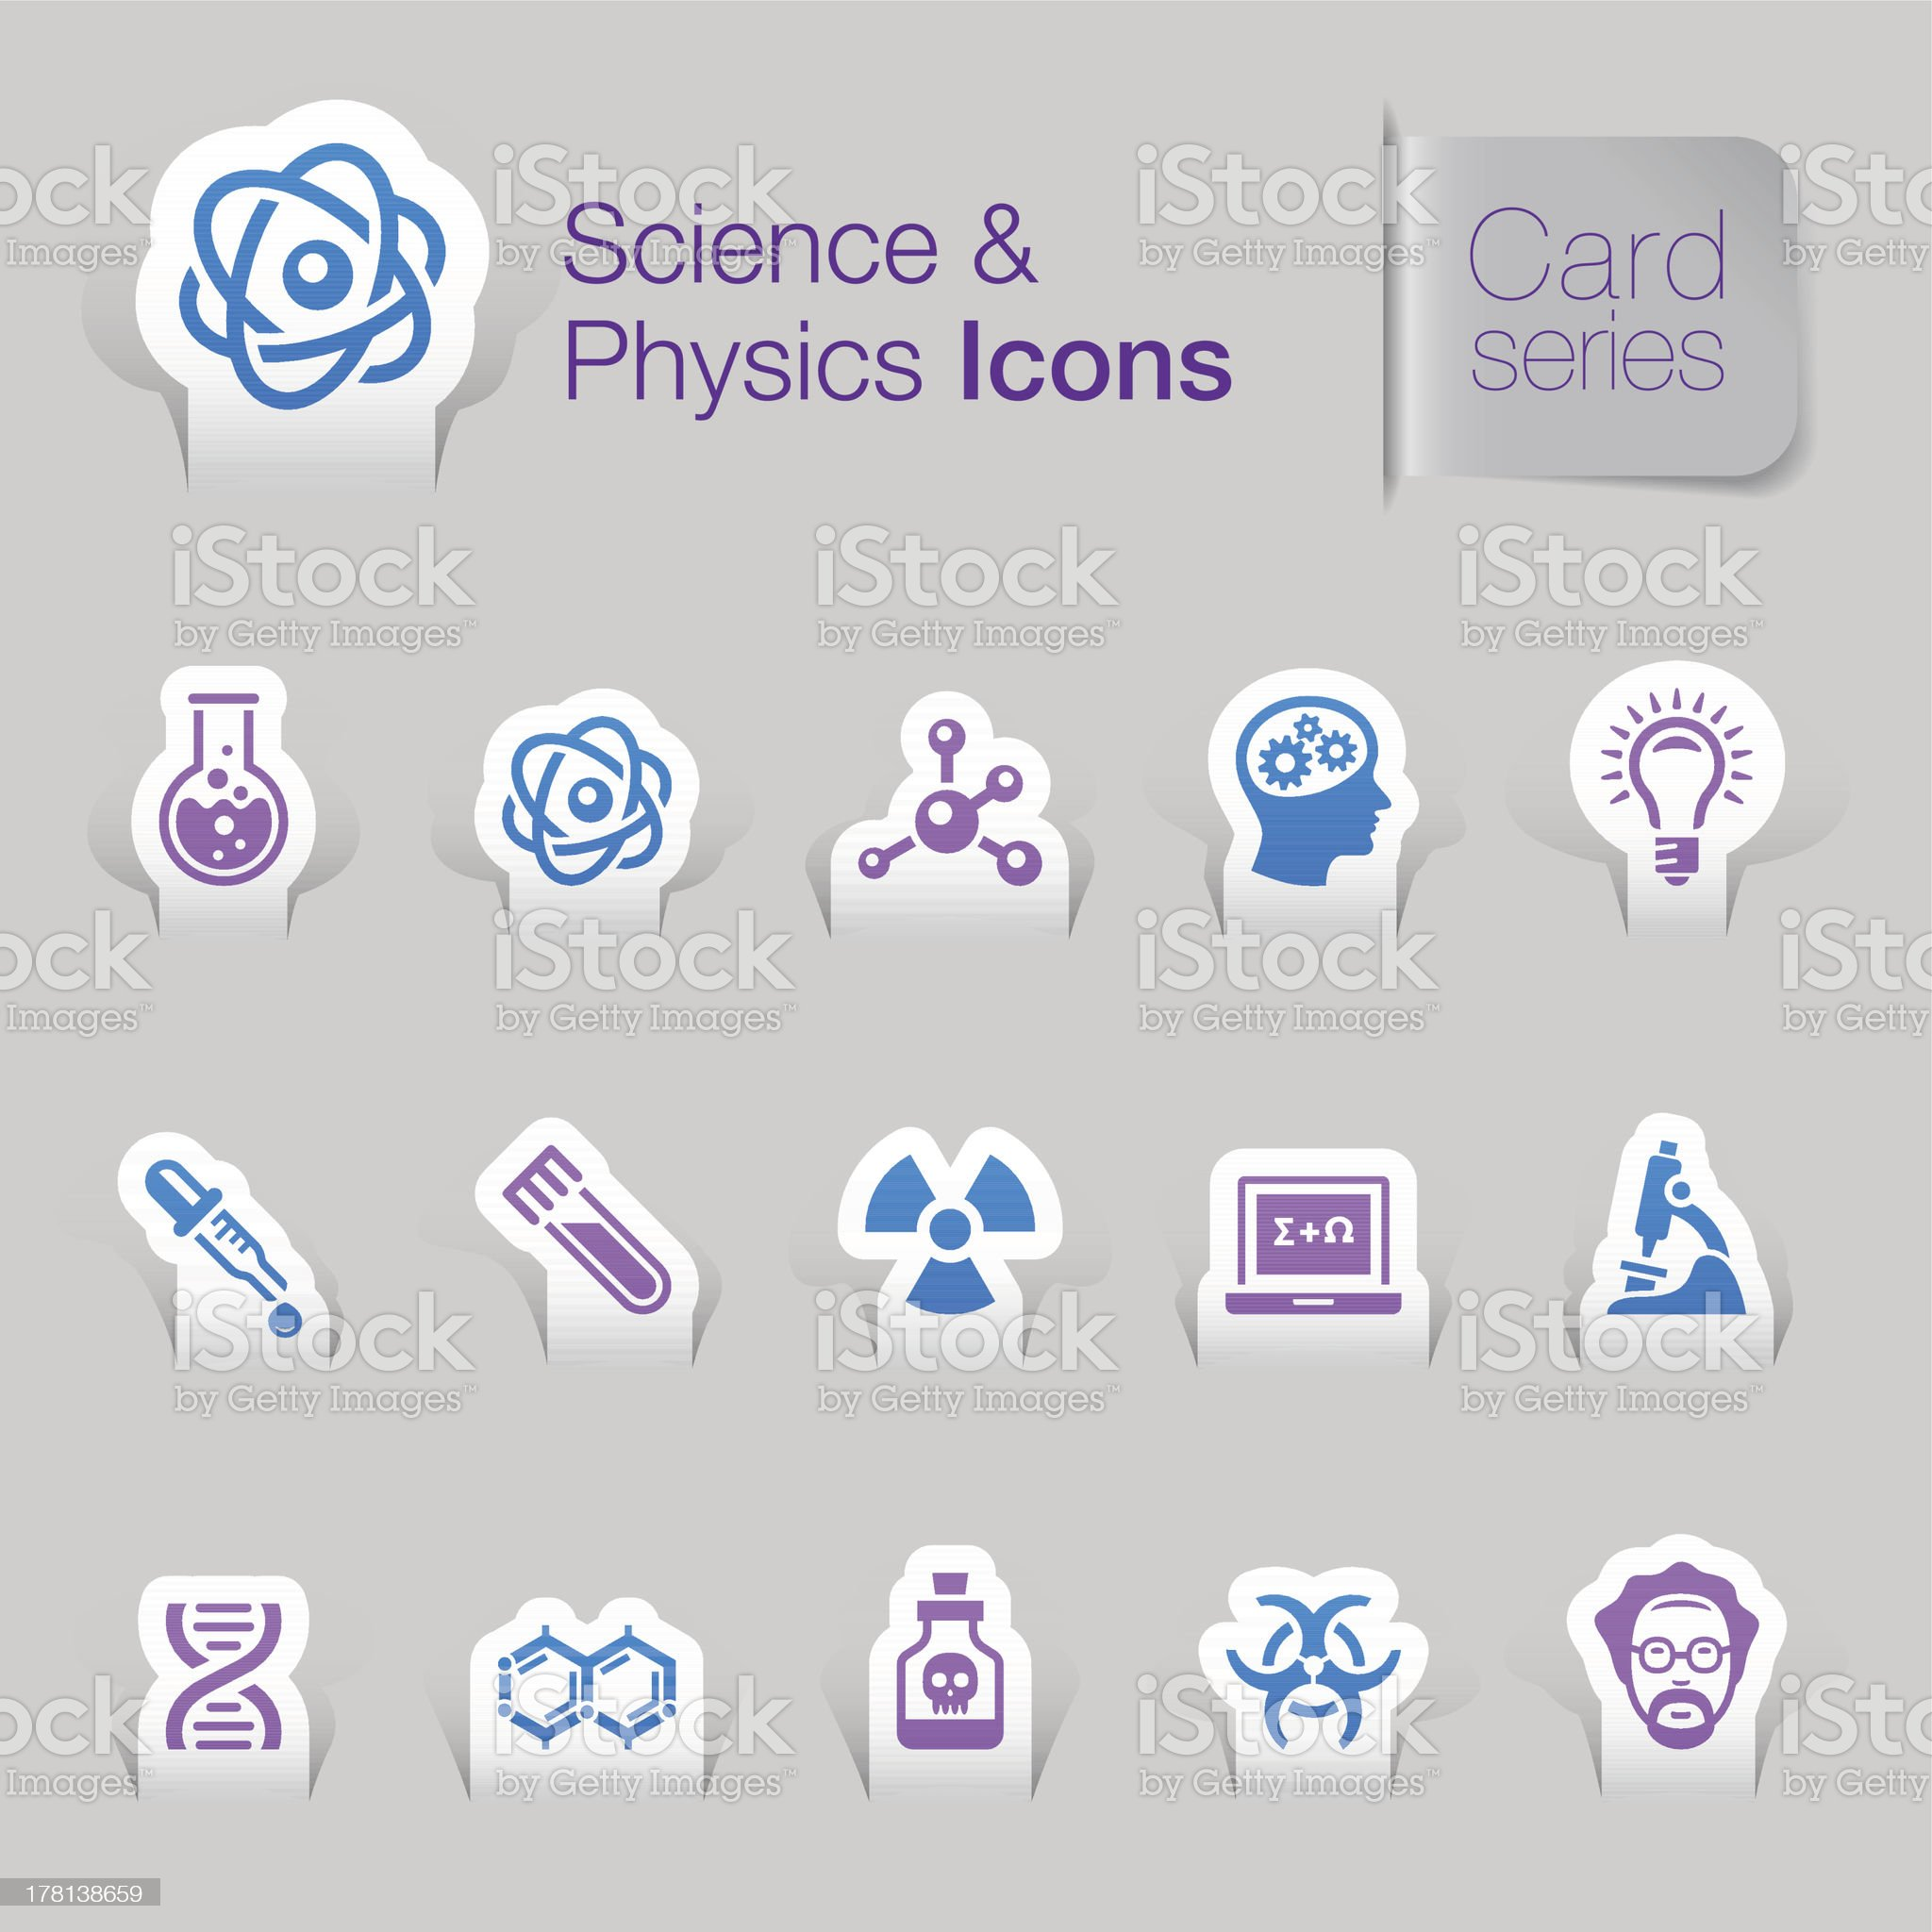 Science & Physics Related Icons royalty-free stock vector art